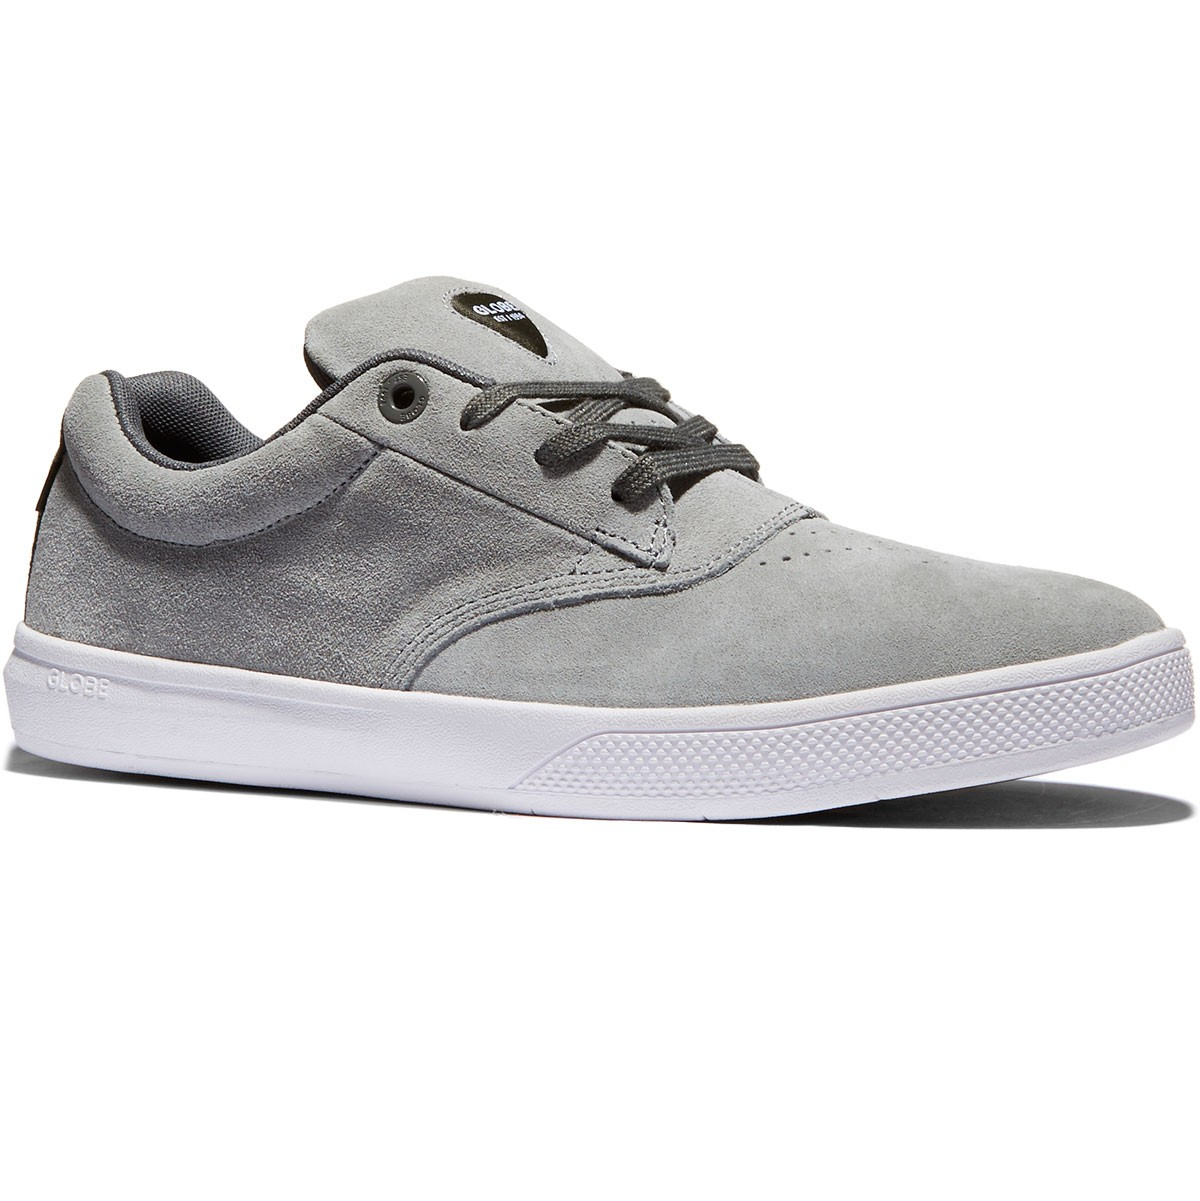 Globe The Eagle SC Shoes - Grey/White - 8.0